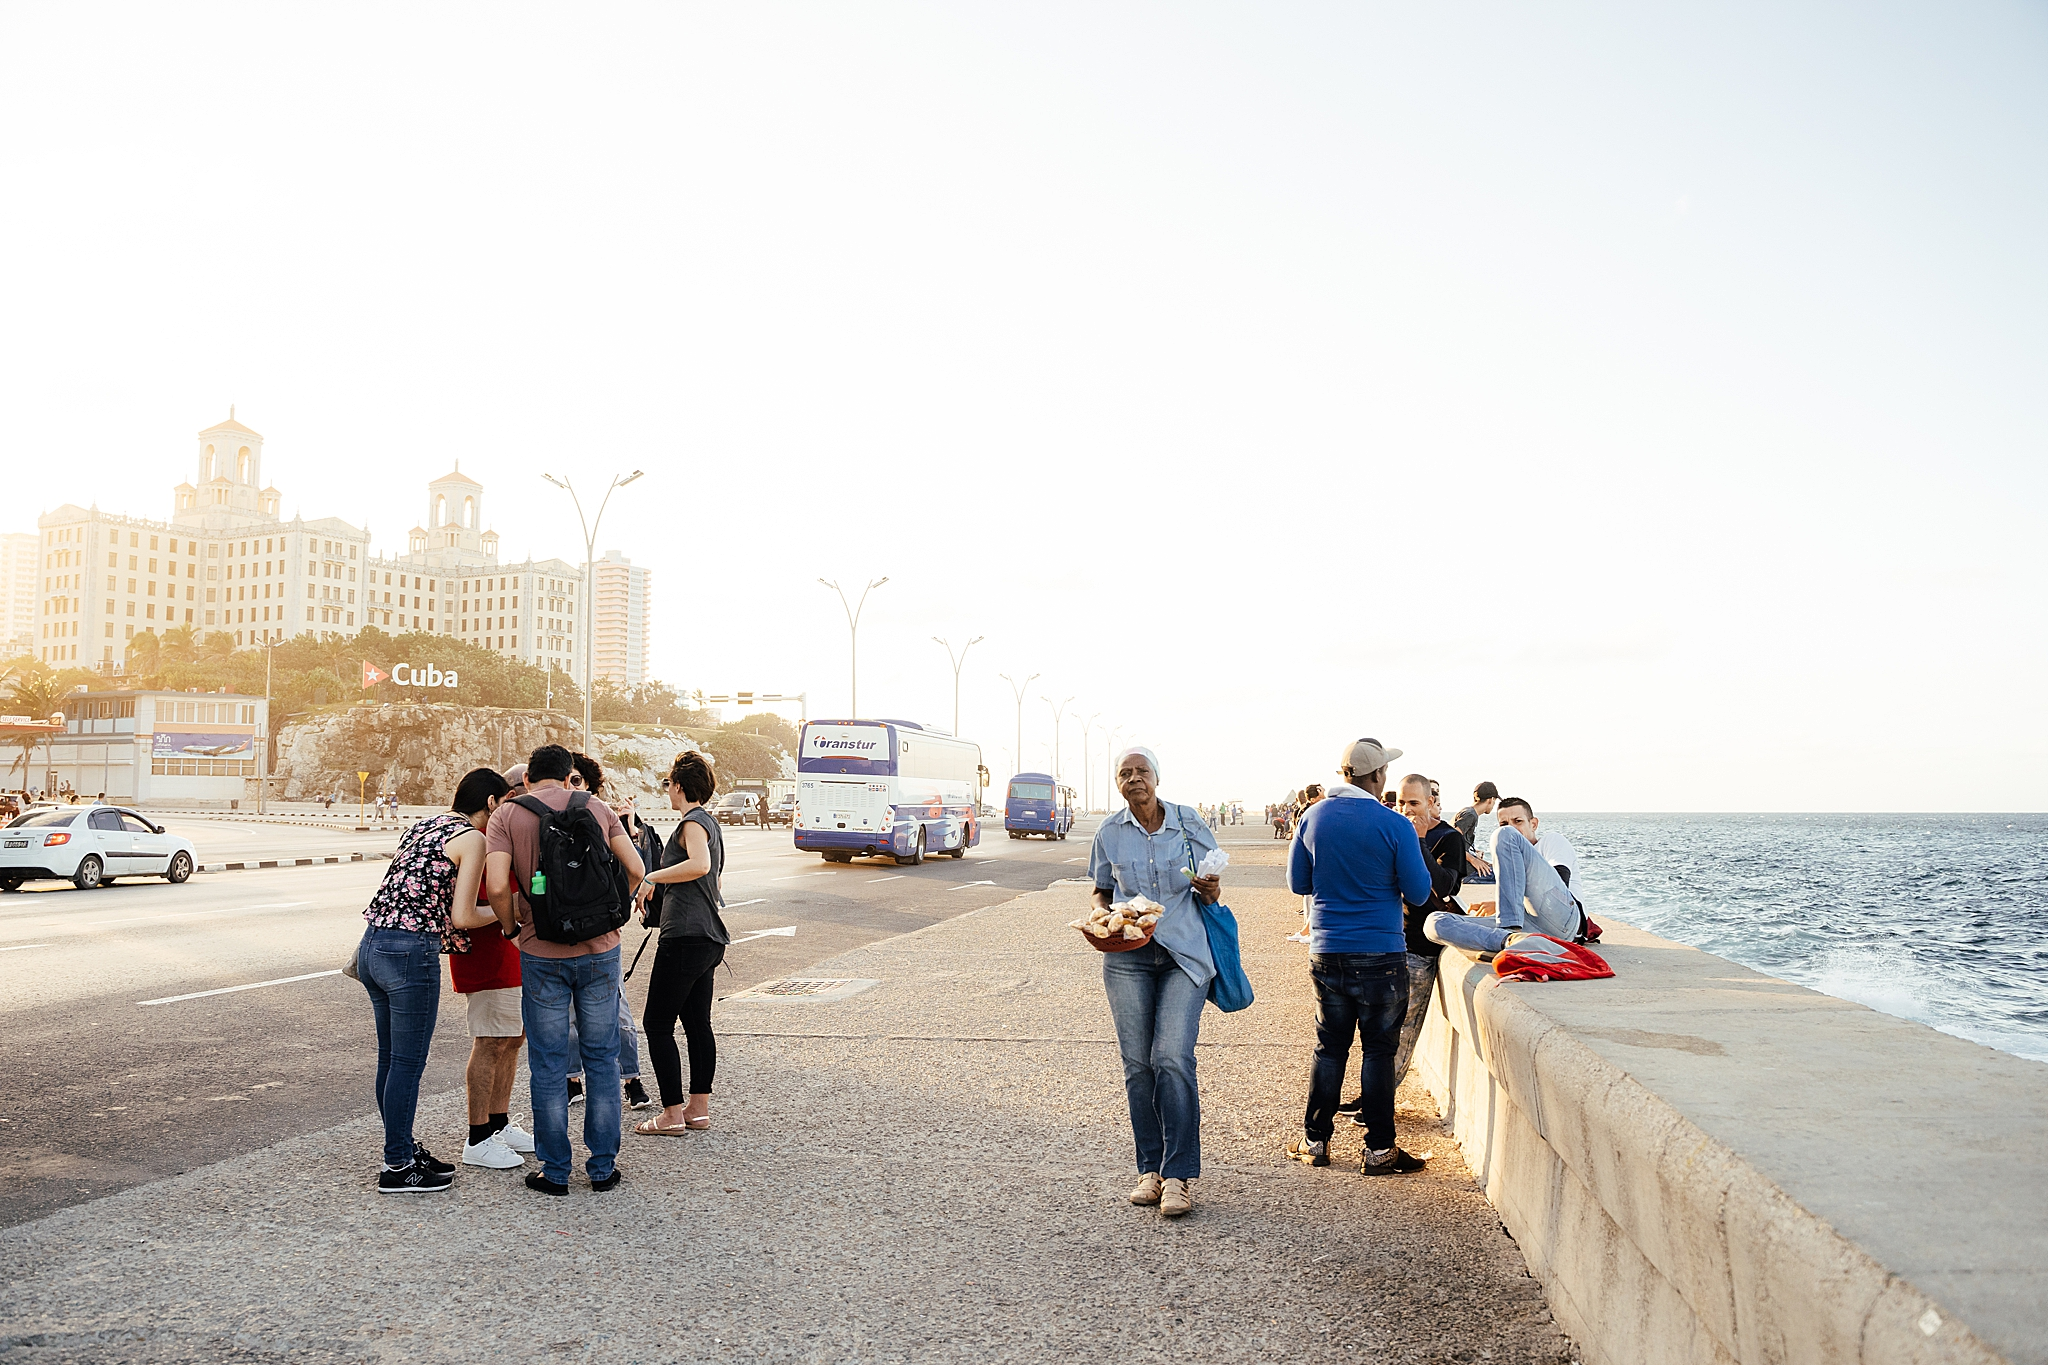 People walking the malecon at sunset in Havana Cuba.